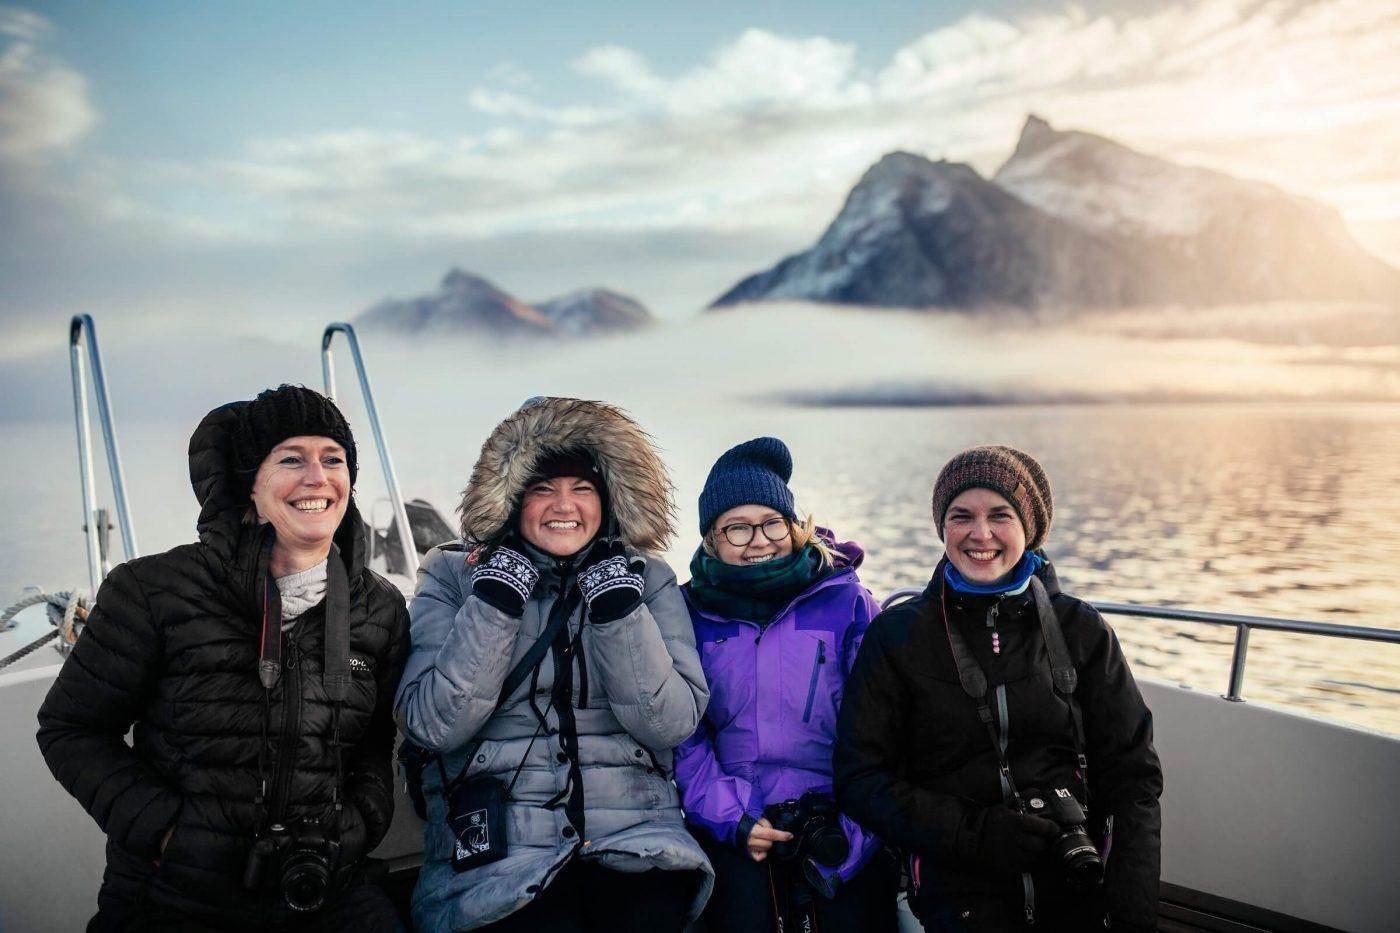 Group photo of tourists on a boat in the Icefjord in Nuuk in Greenland. Photo by Rebecca Gustafsson.